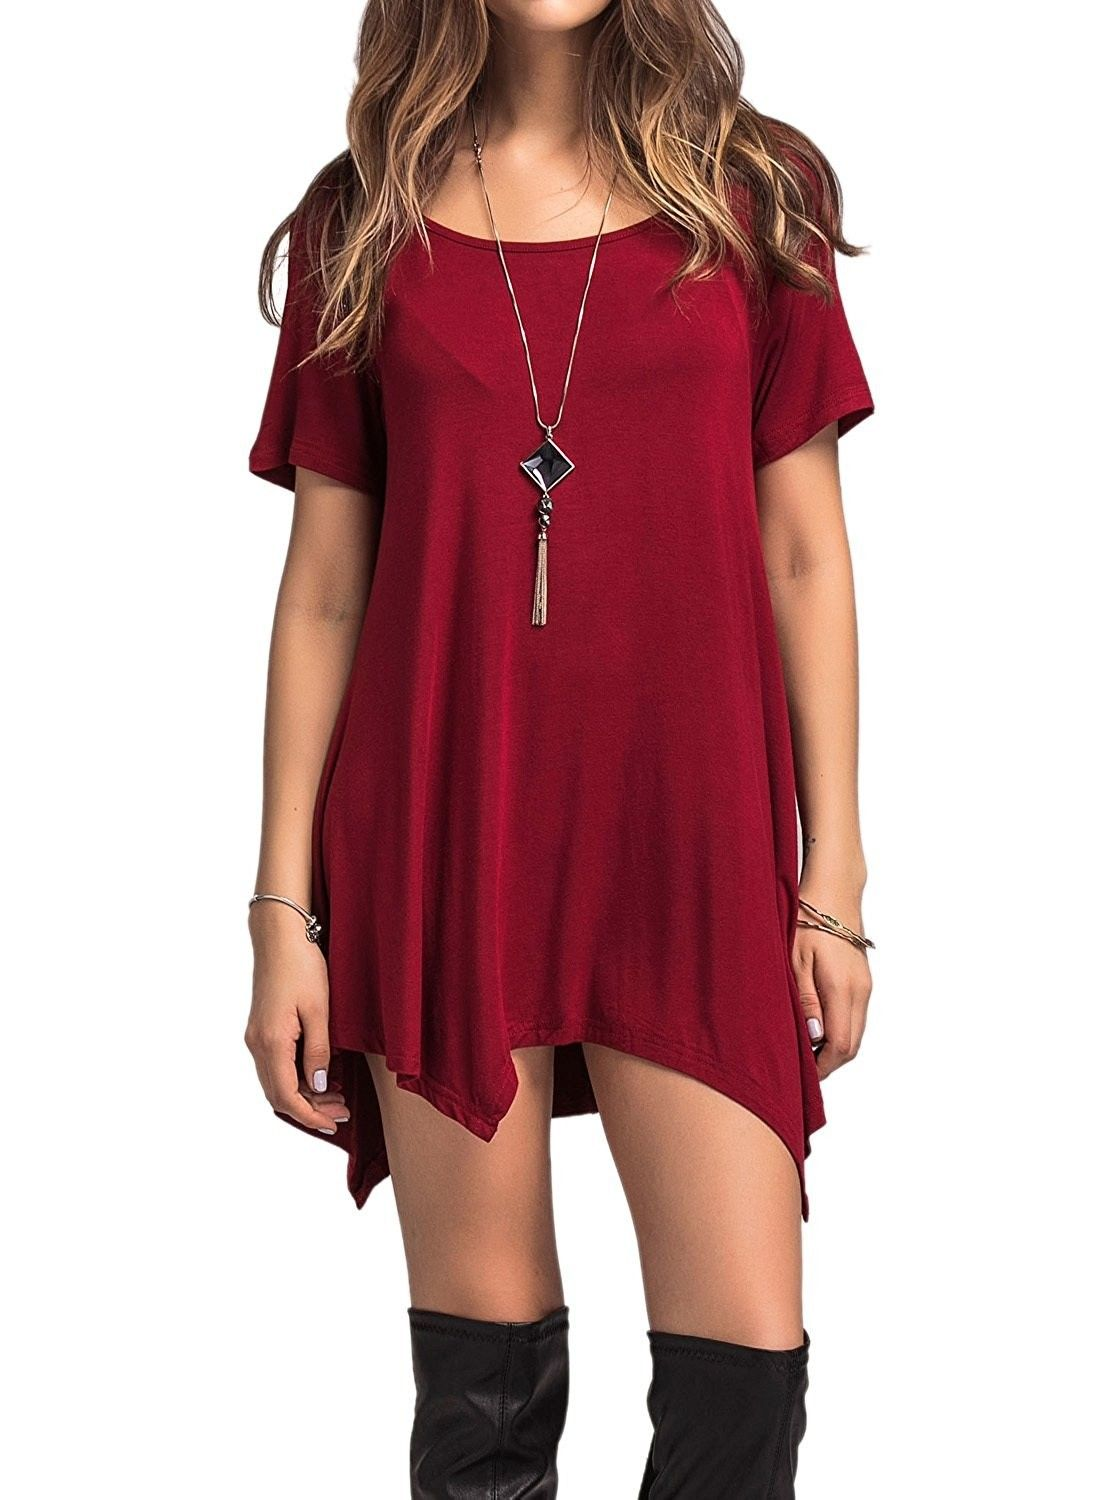 5763d1525e3a Women's Scoop Neck Loose Fit Flowy Tunic Top - Burgundy - CV184Z4M8OT, Women's Clothing, Tops & Tees, Tunics #women #fashion #clothing #style  #sexy #outfits ...